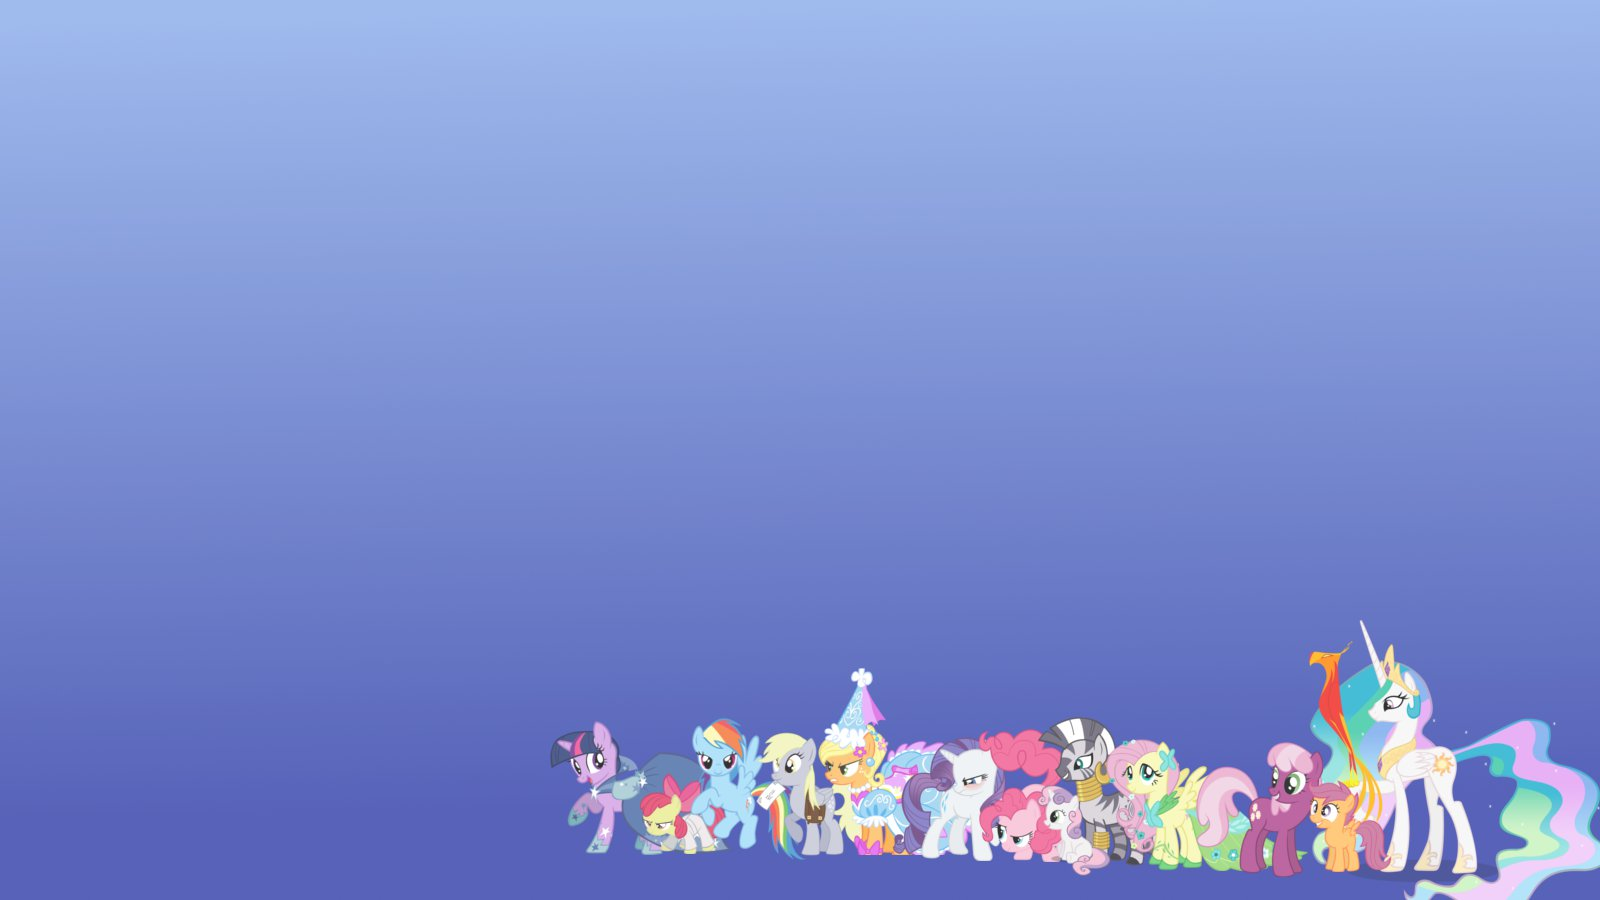 Free Download Cast Of My Little Pony Wallpaper Background